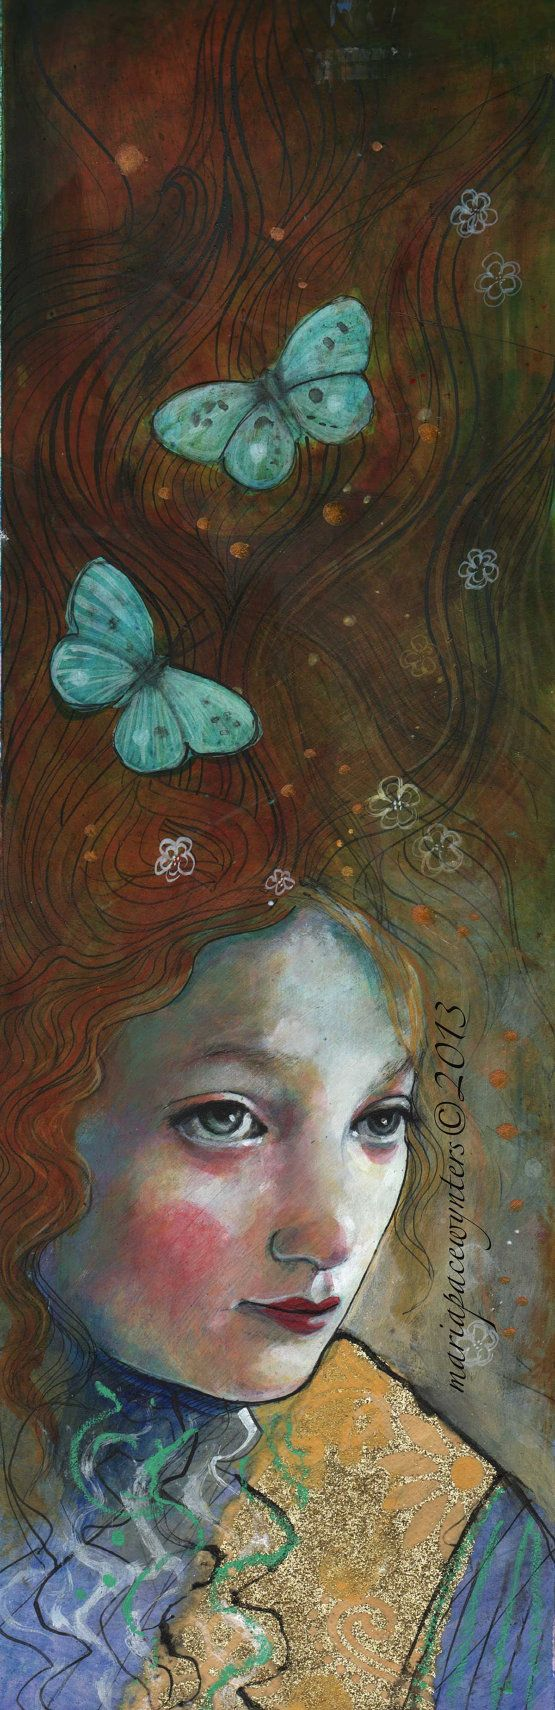 Dream Warrior- Original mixed media painting by Maria Pace-Wynters